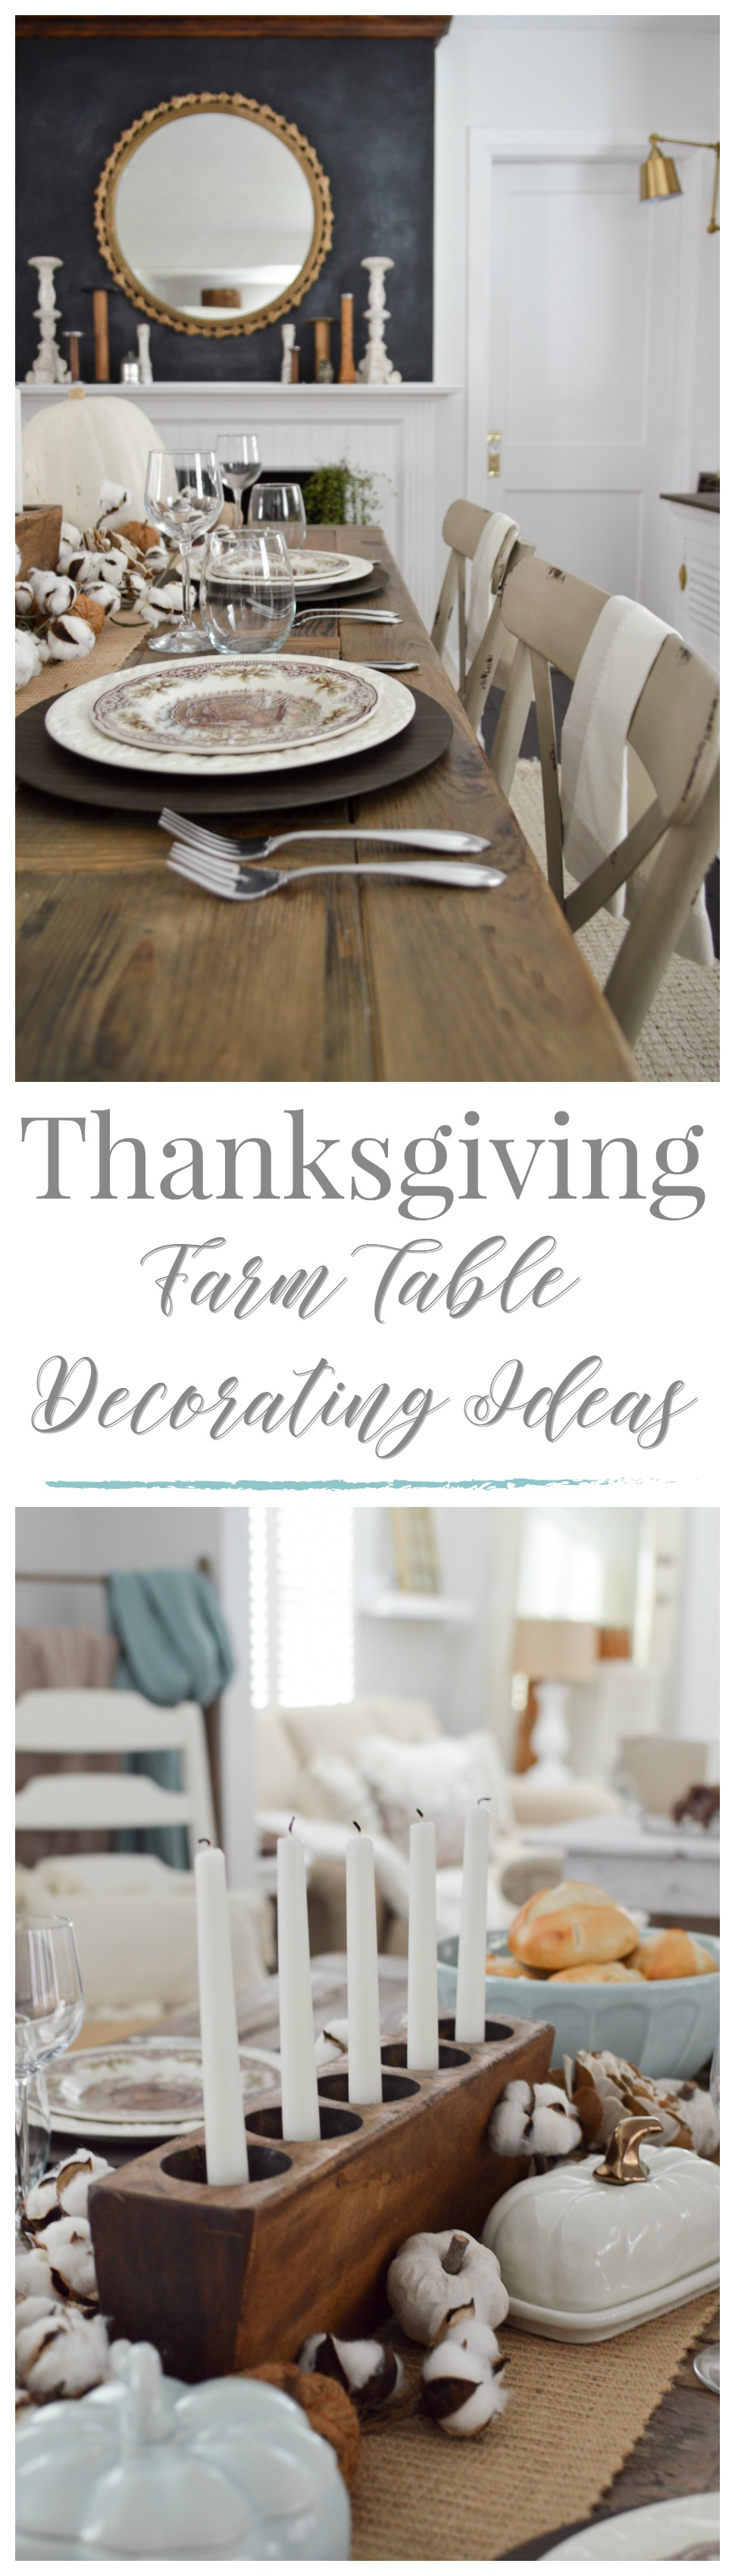 Cottage Farmhouse Thanksgiving Tablescape - Vintage Turkey Farm Table Setting - www.foxhollowcottage.com